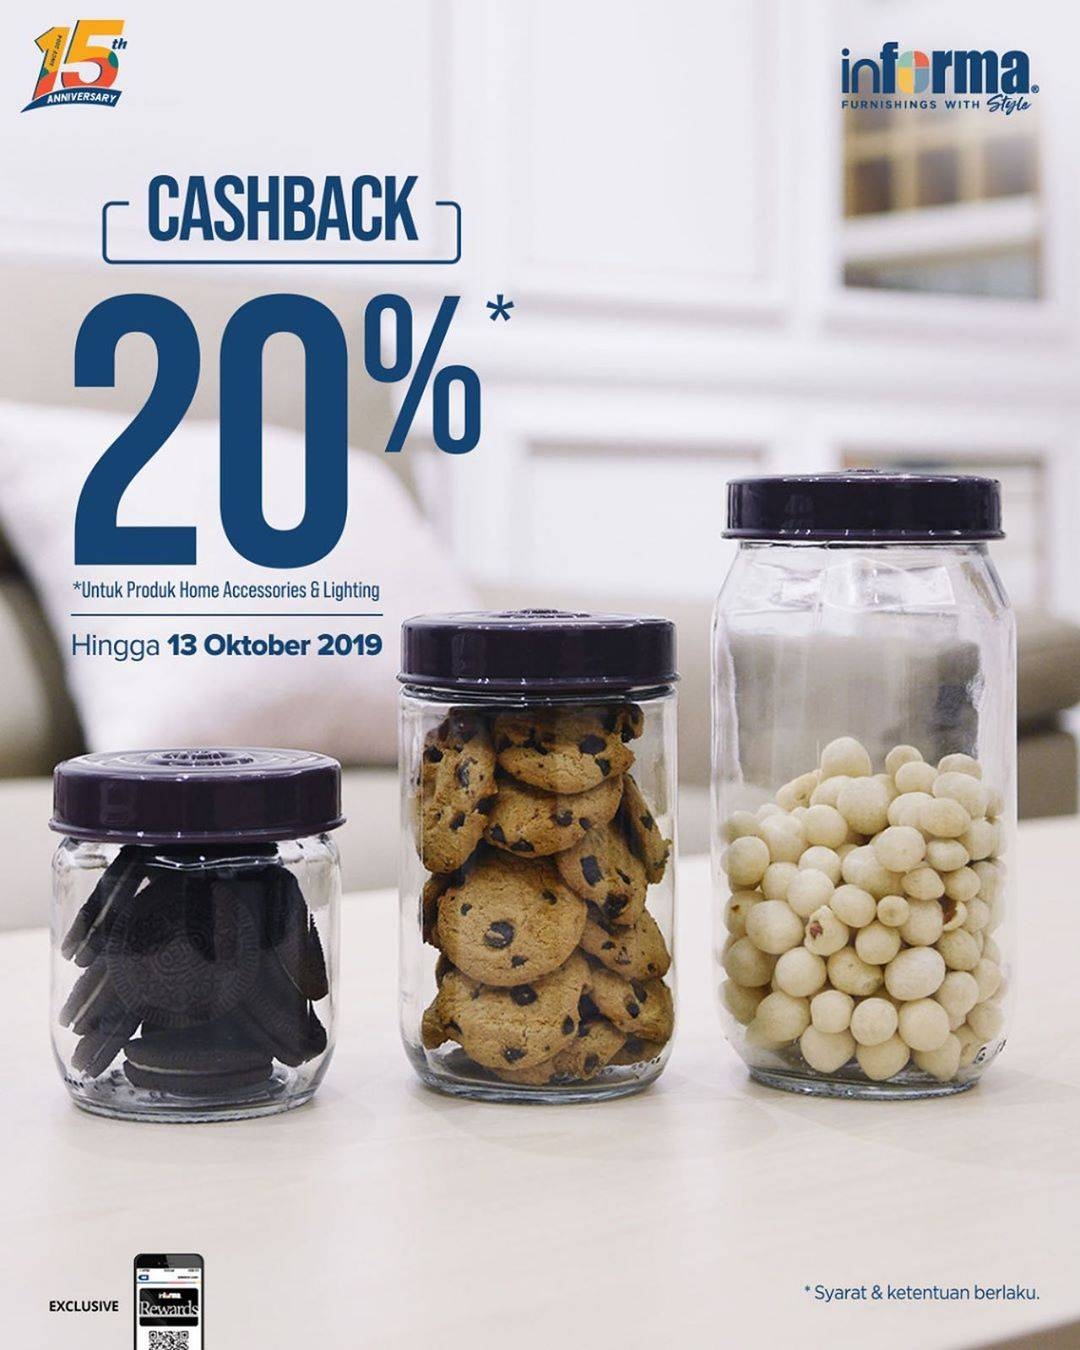 Informa Promo Cashback 20% Untuk Produk Home Accessories & Lighting